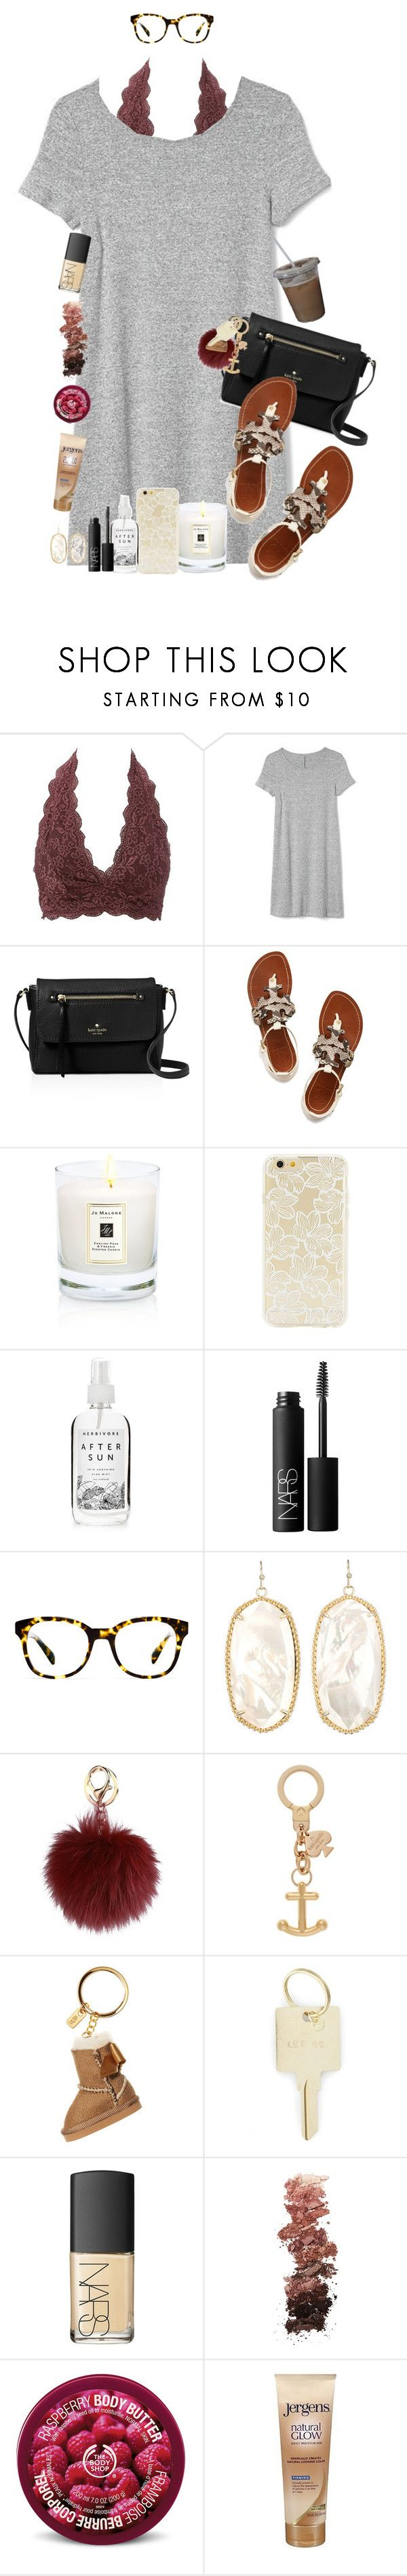 """missing fall sets"" by sophie-dye ❤ liked on Polyvore featuring Charlotte Russe, Gap, Kate Spade, Tory Burch, Jo Malone, Forever 21, Herbivore, NARS Cosmetics, Warby Parker and Kendra Scott"